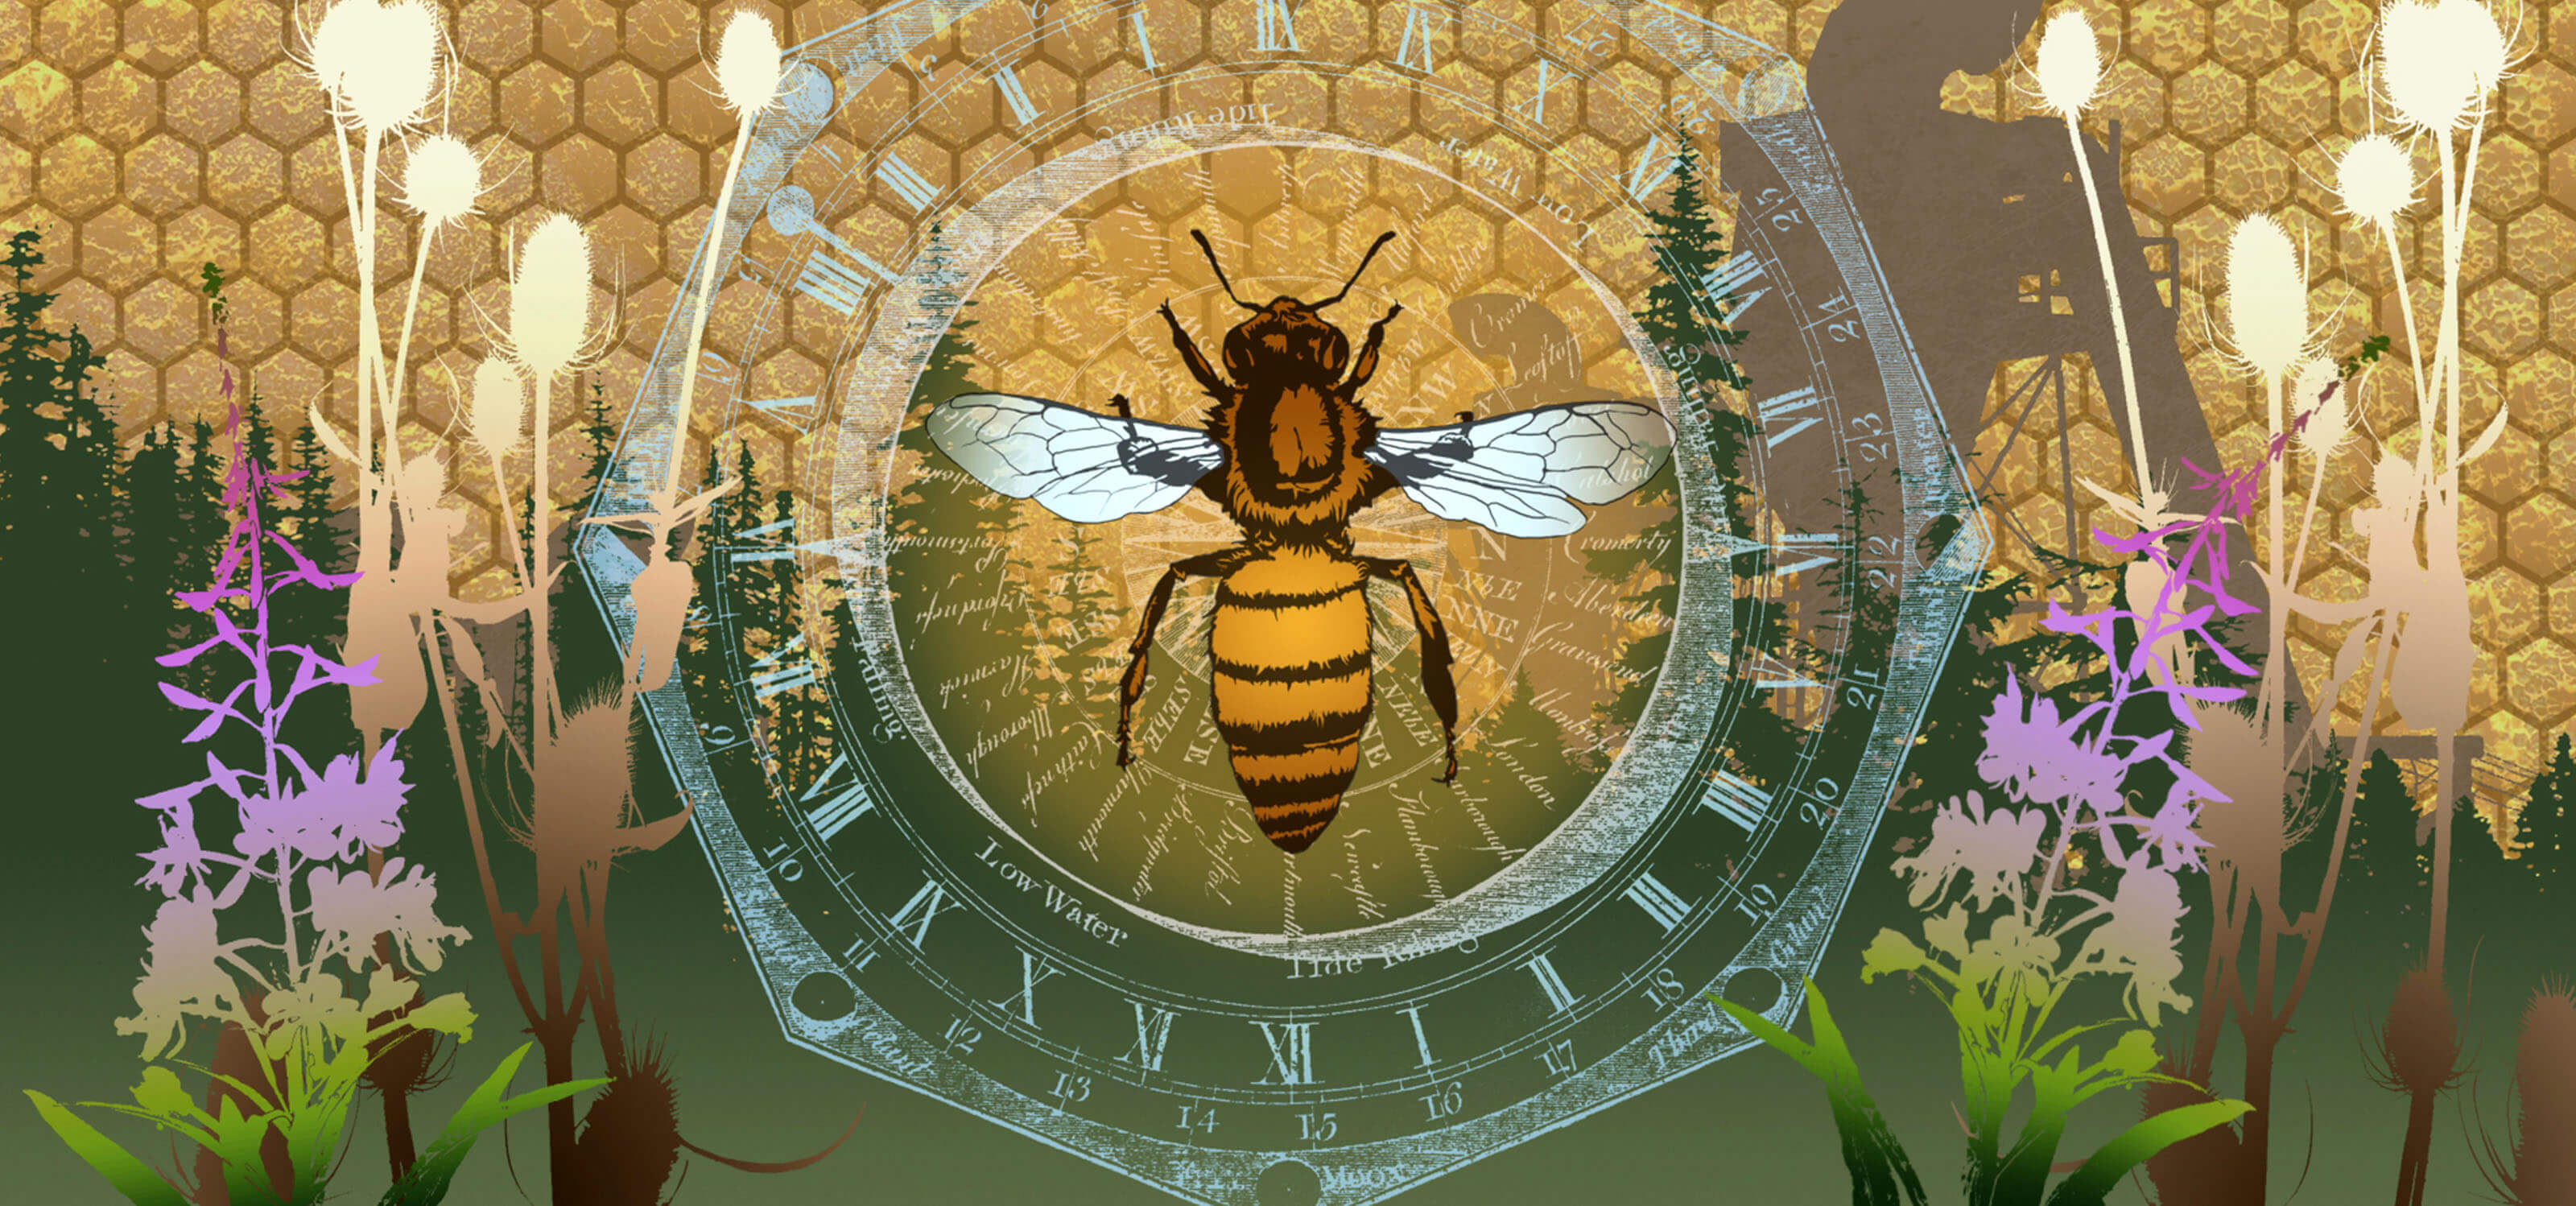 Digital composition of a bee and plants superimposed over a forest and honeycomb